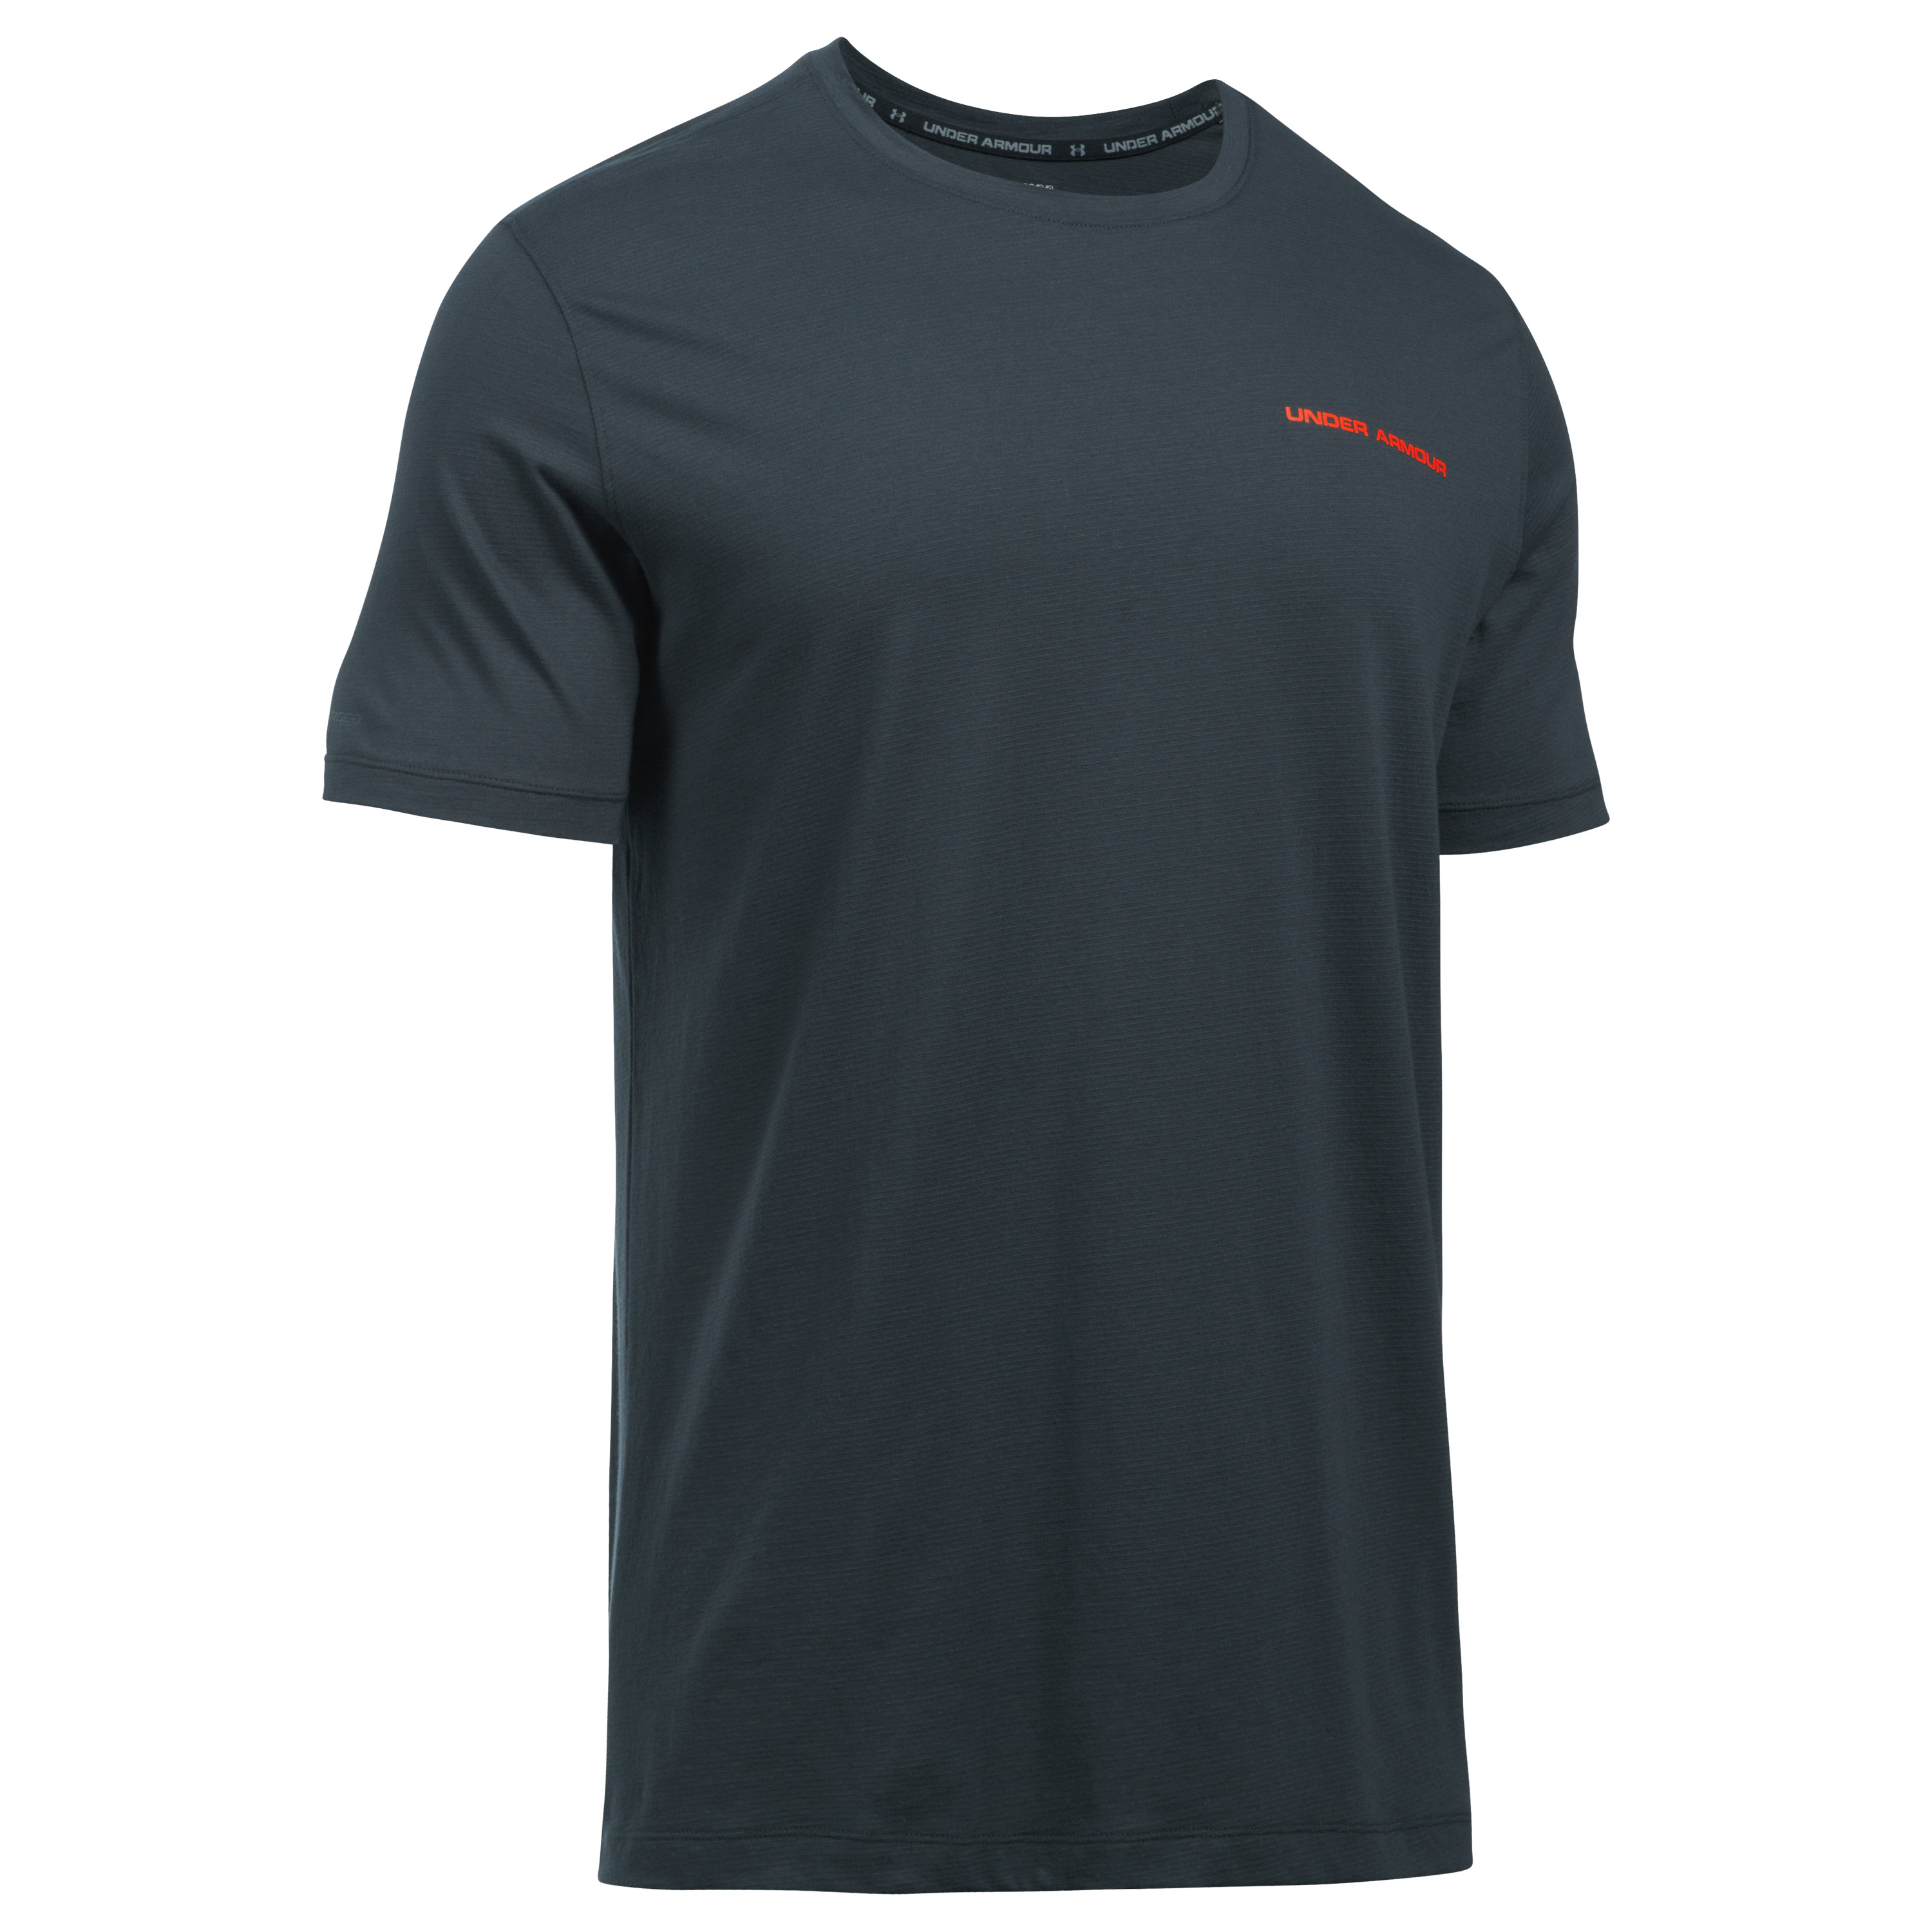 Under Armour Fitness T-Shirt Charged Cotton dark gray